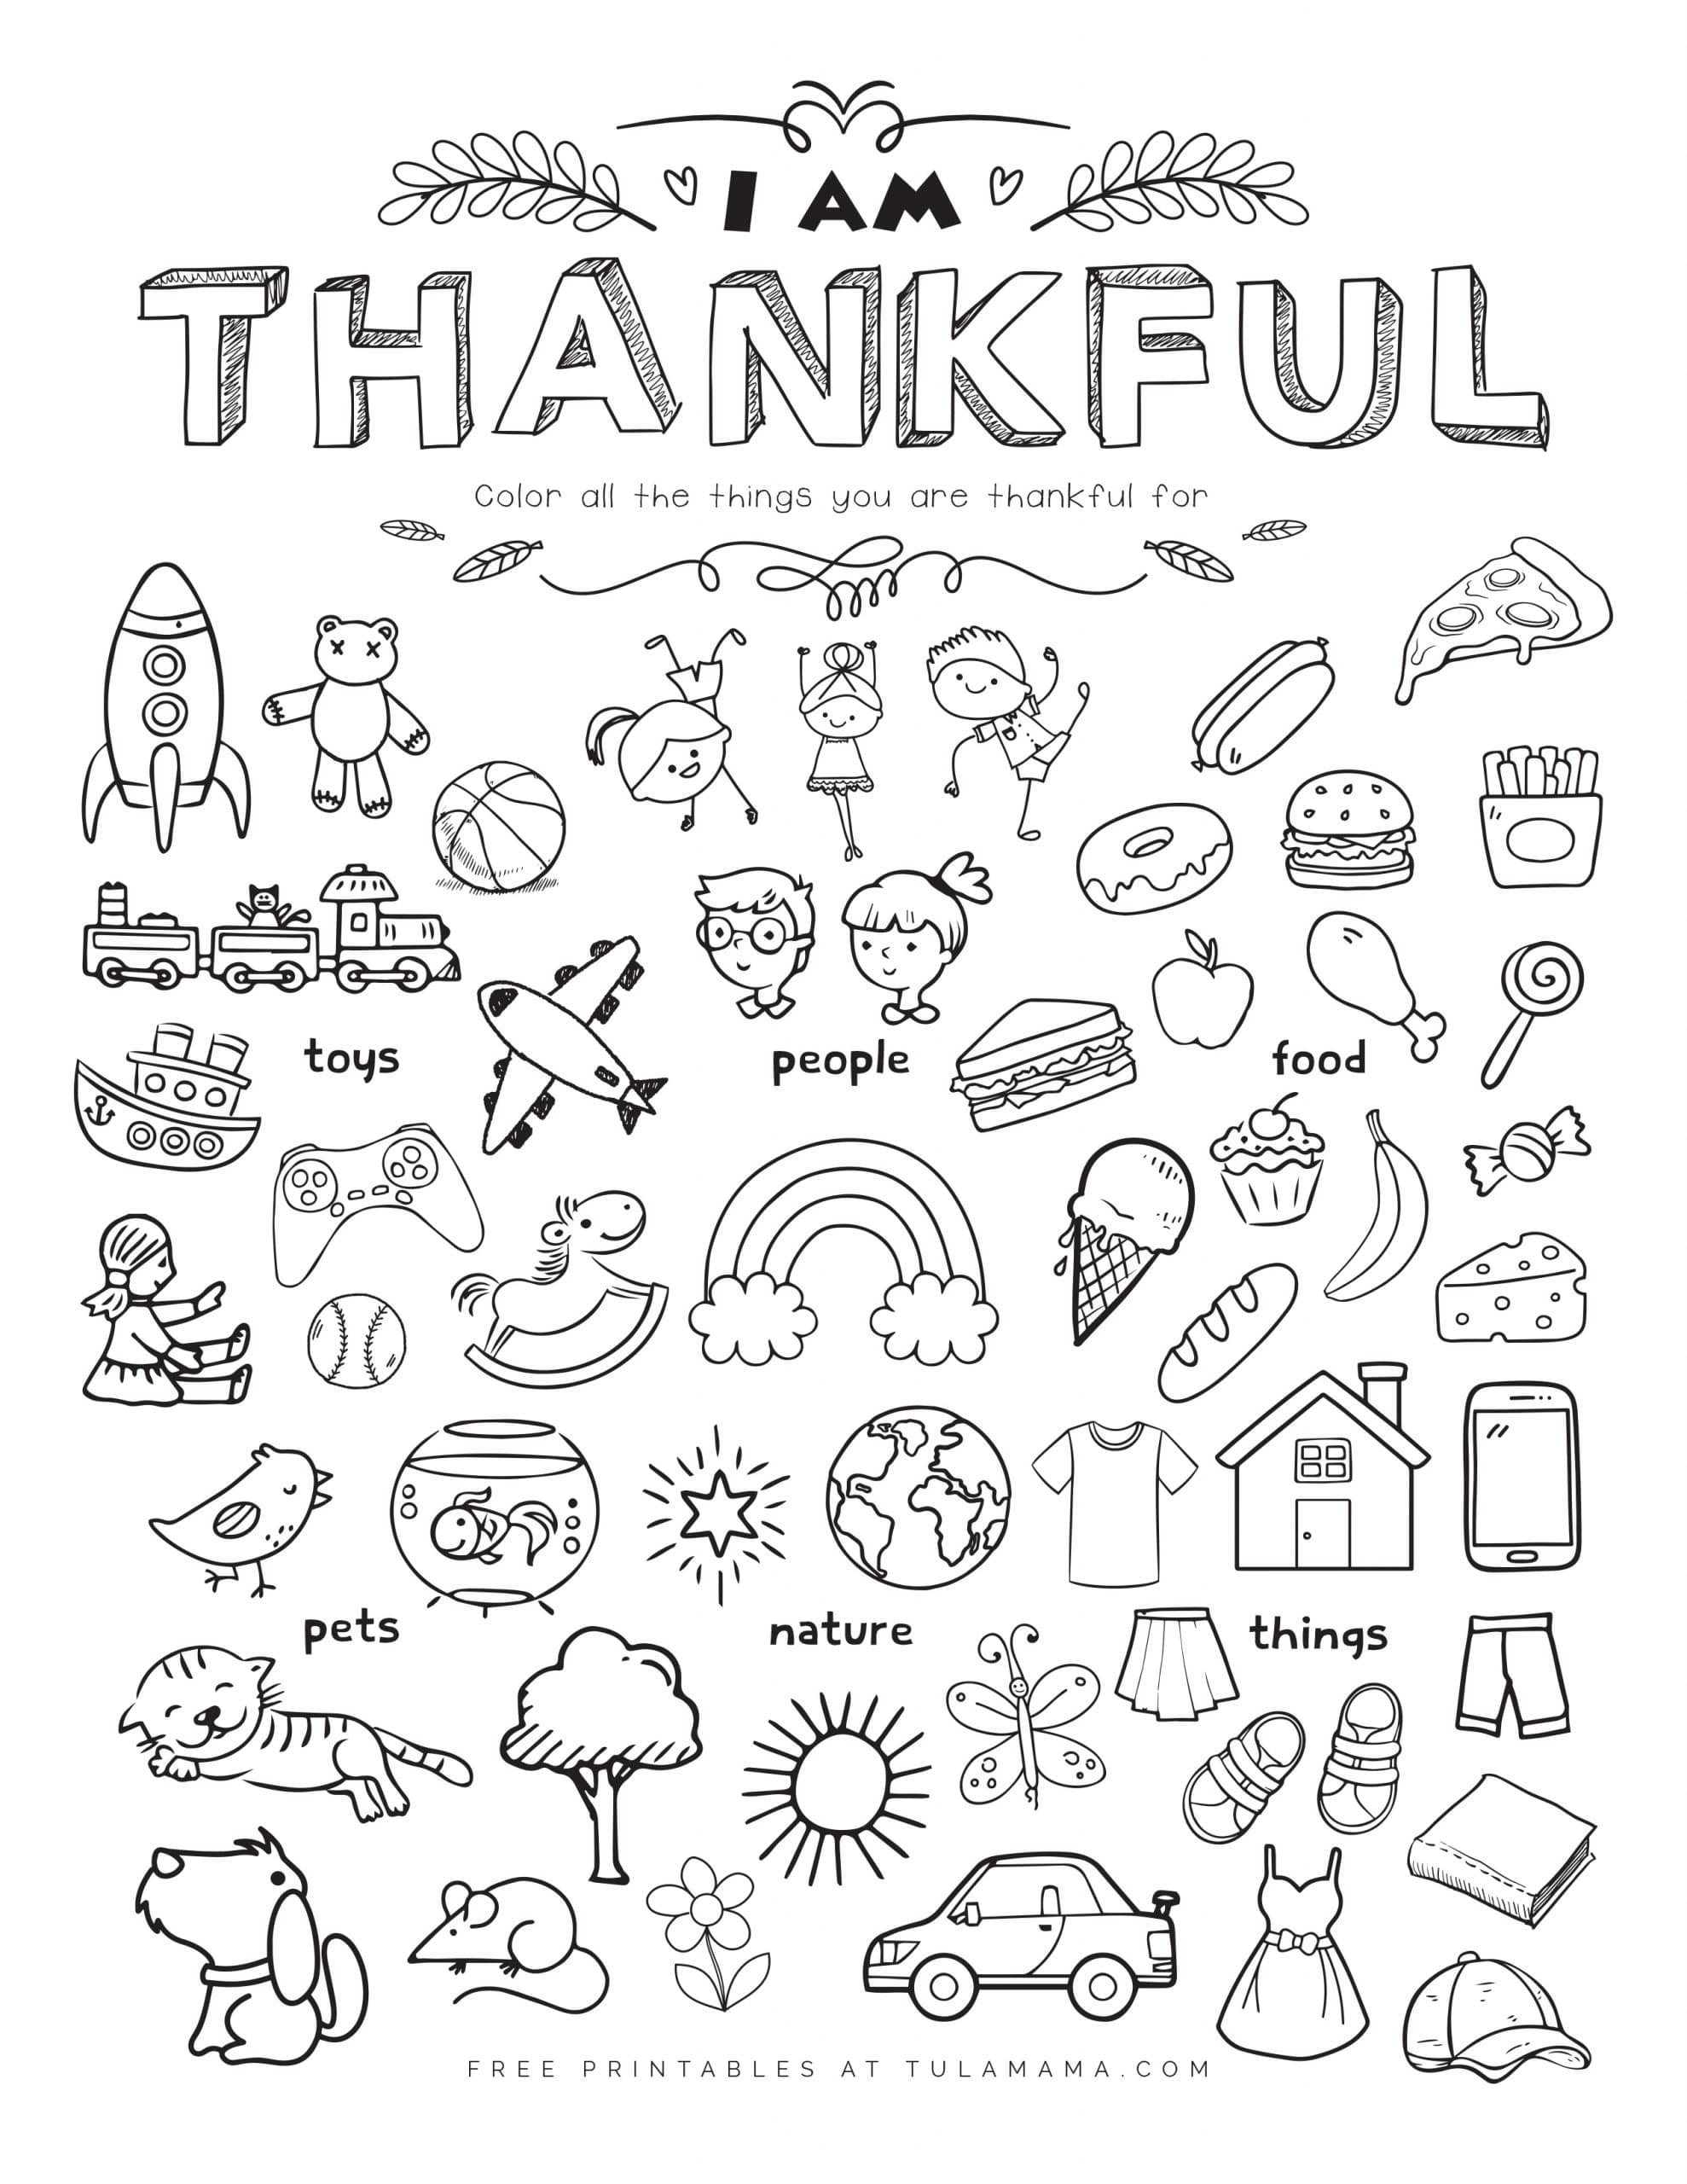 Free Printable I Am Thankful For Worksheet